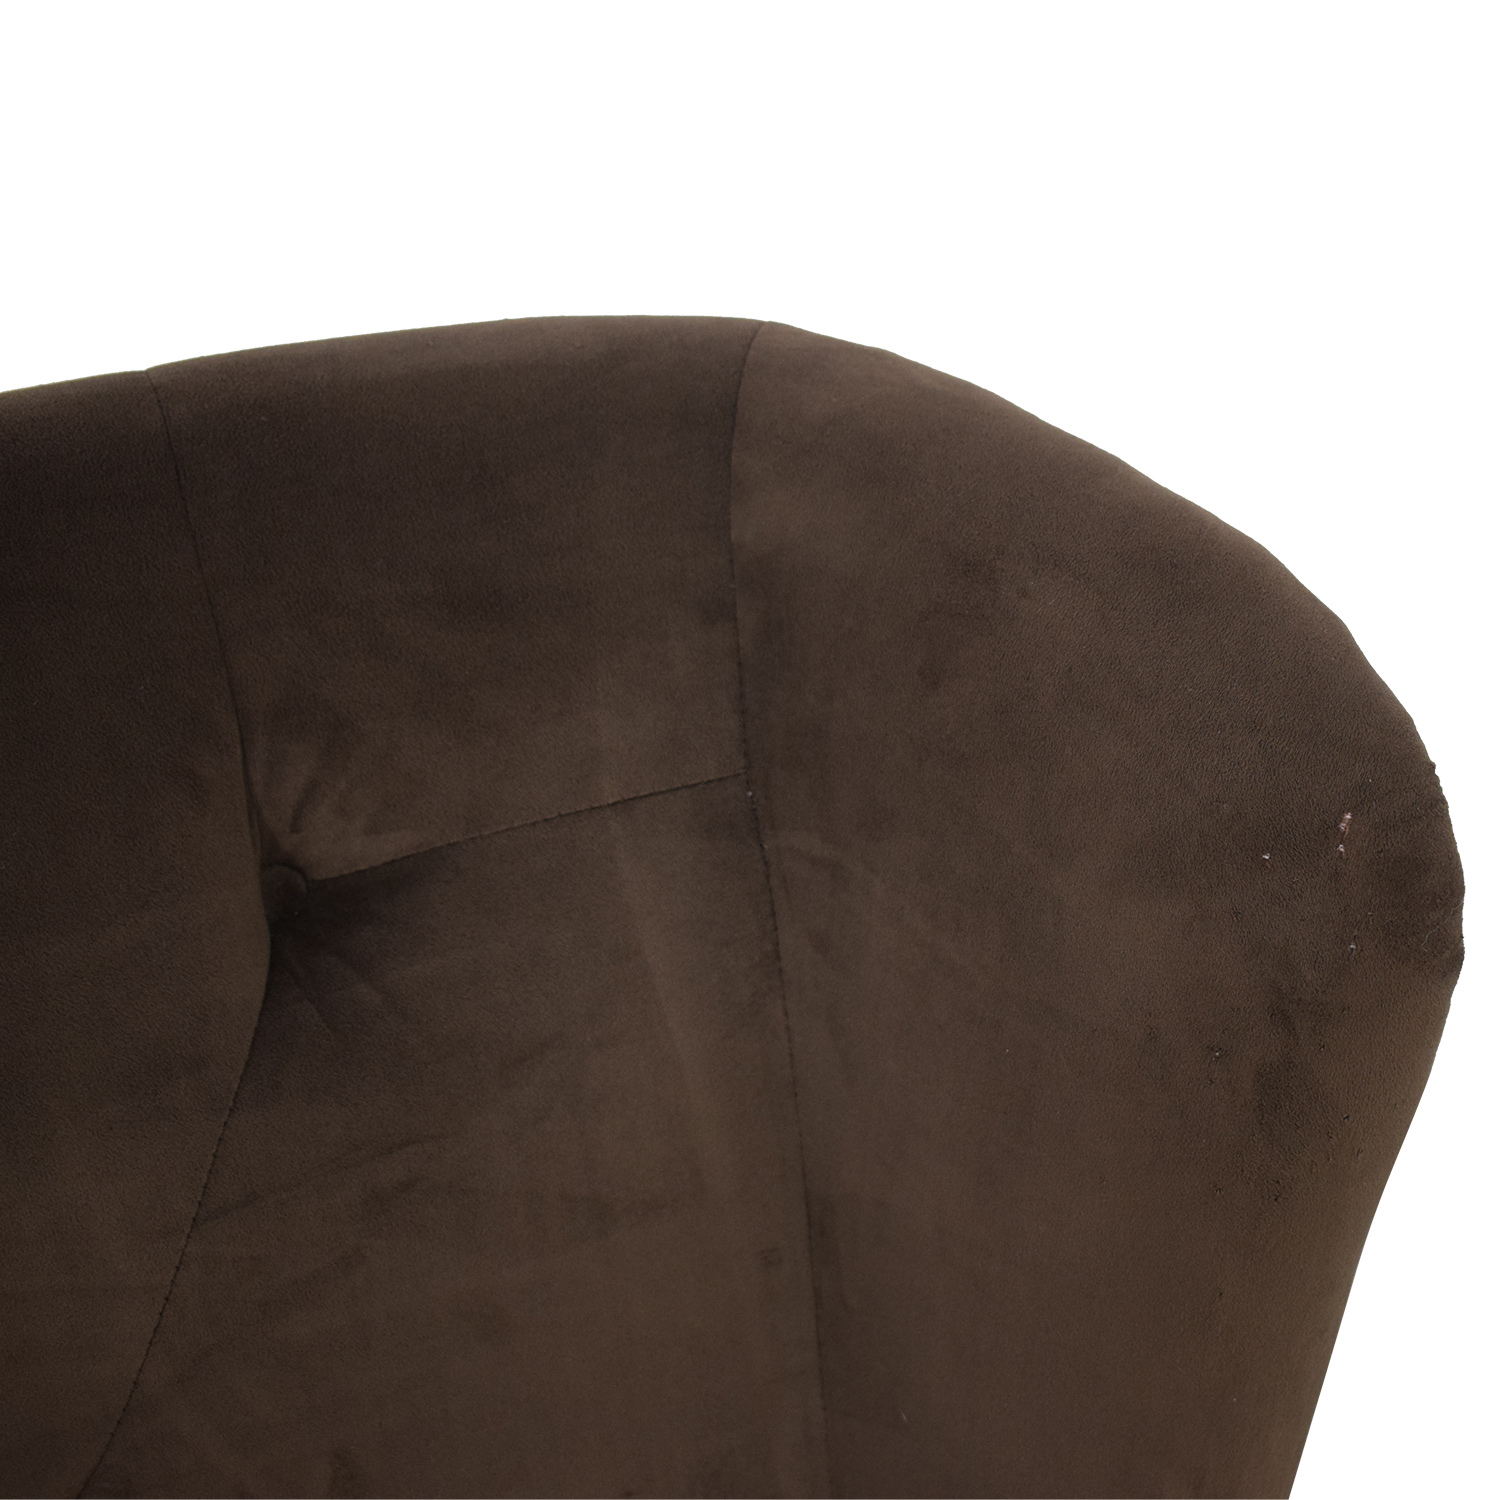 Brown Tufted High Back Loveseat on sale